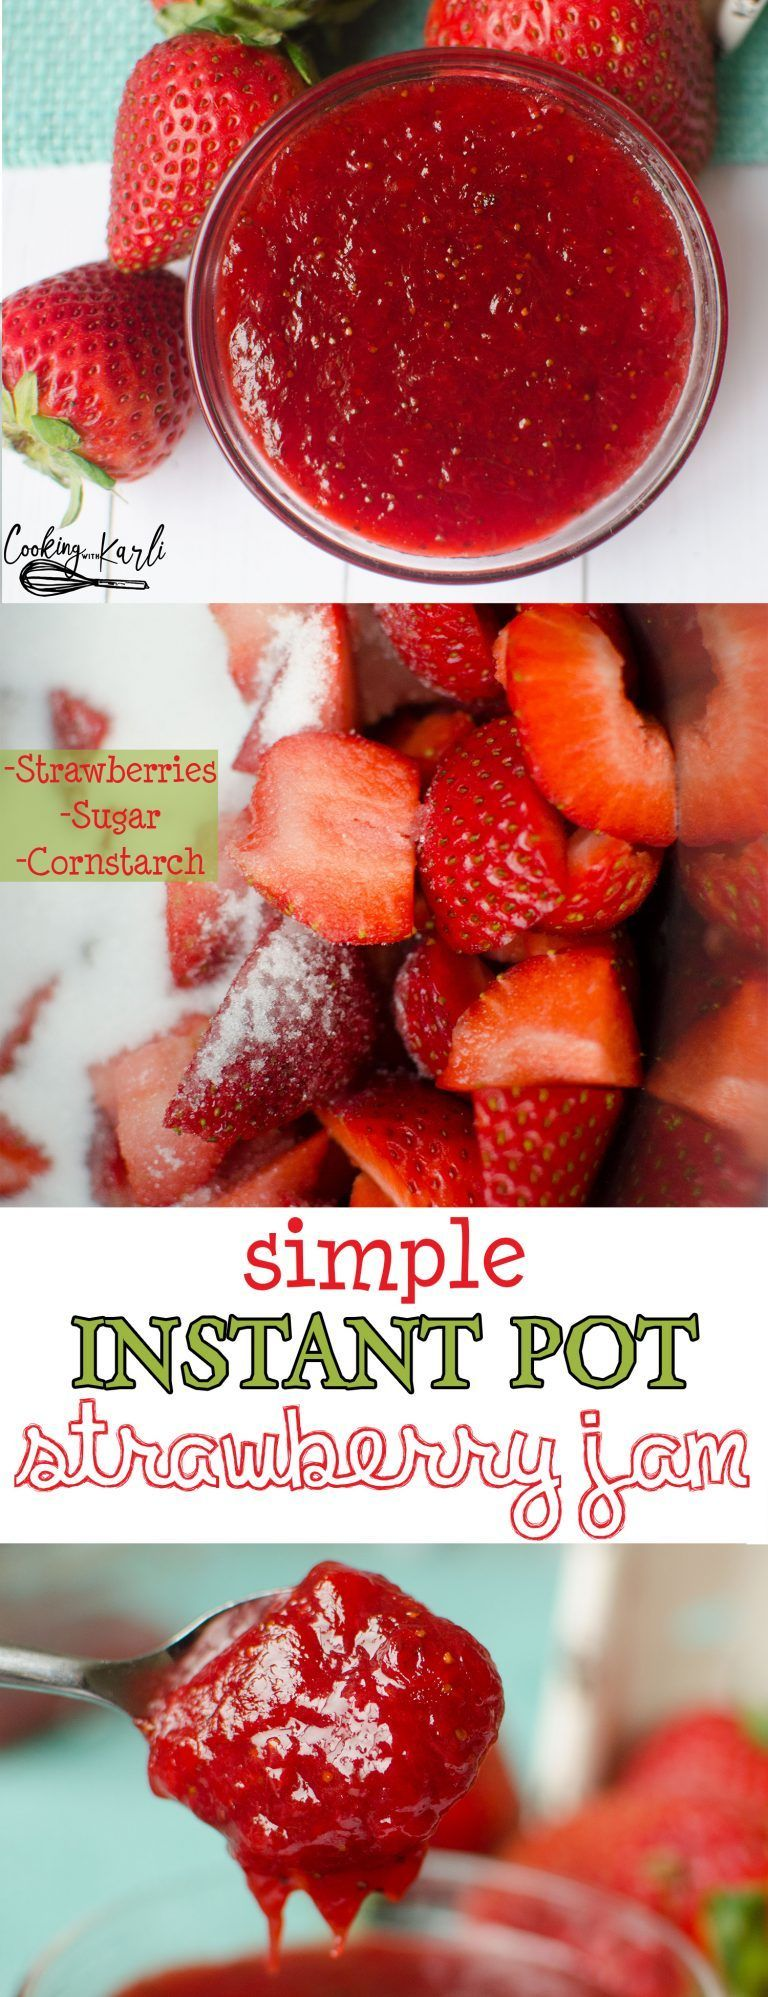 Pot Strawberry Jam 2.0 is made of just three ingredients: Strawberries, sugar and cornstarch. The strawberry flavor shines bright in this jam that you'll be eating by the spoonful!